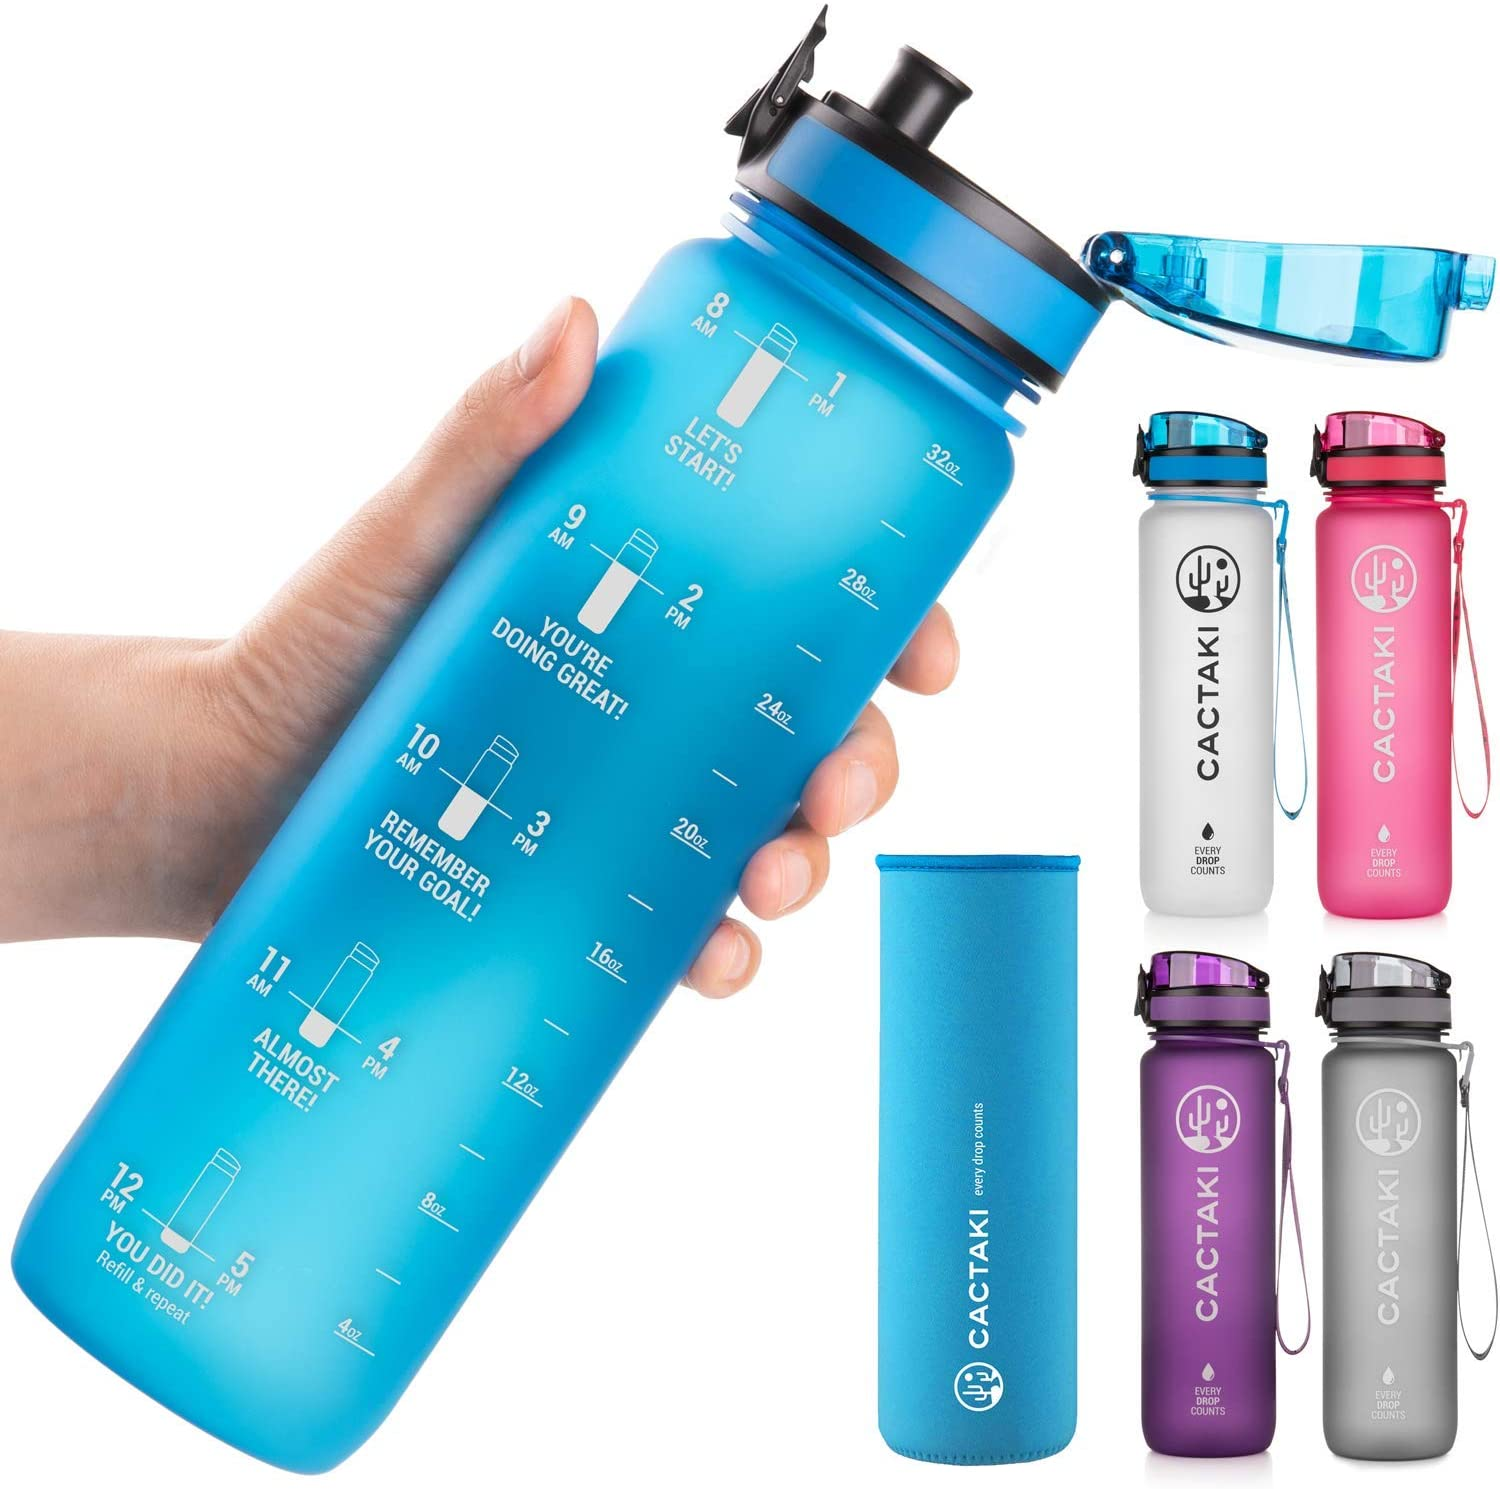 Green Sequoia Cactaki Water Bottles with Times to Drink 32oz, BPA Free, Time Markers, Non-Toxic, Leakproof, Durable, for Fitness and Outdoor Enthusiasts